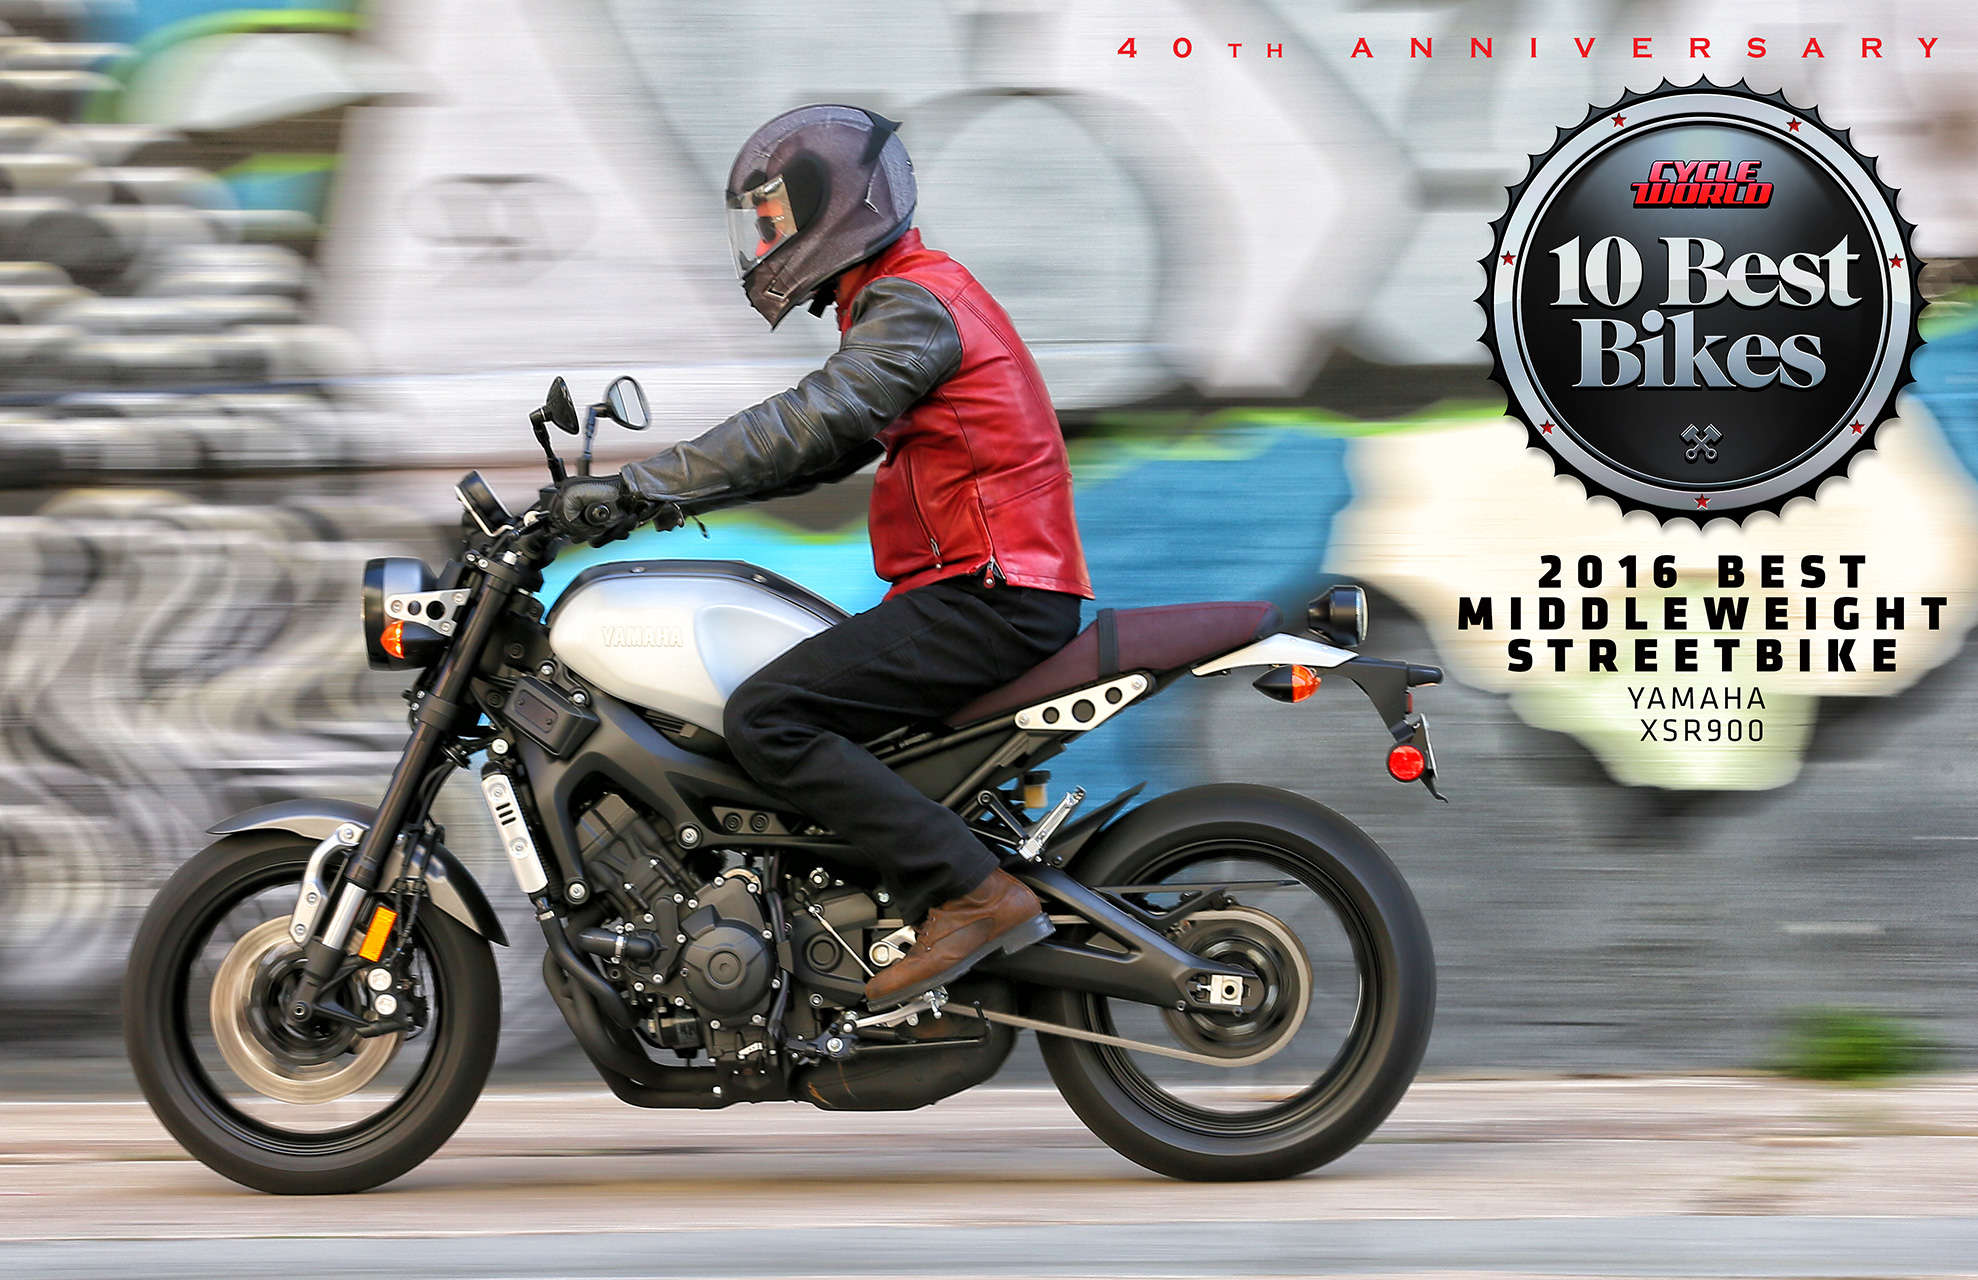 Best middleweight streetbike: Yamaha XSR900 | Business ...